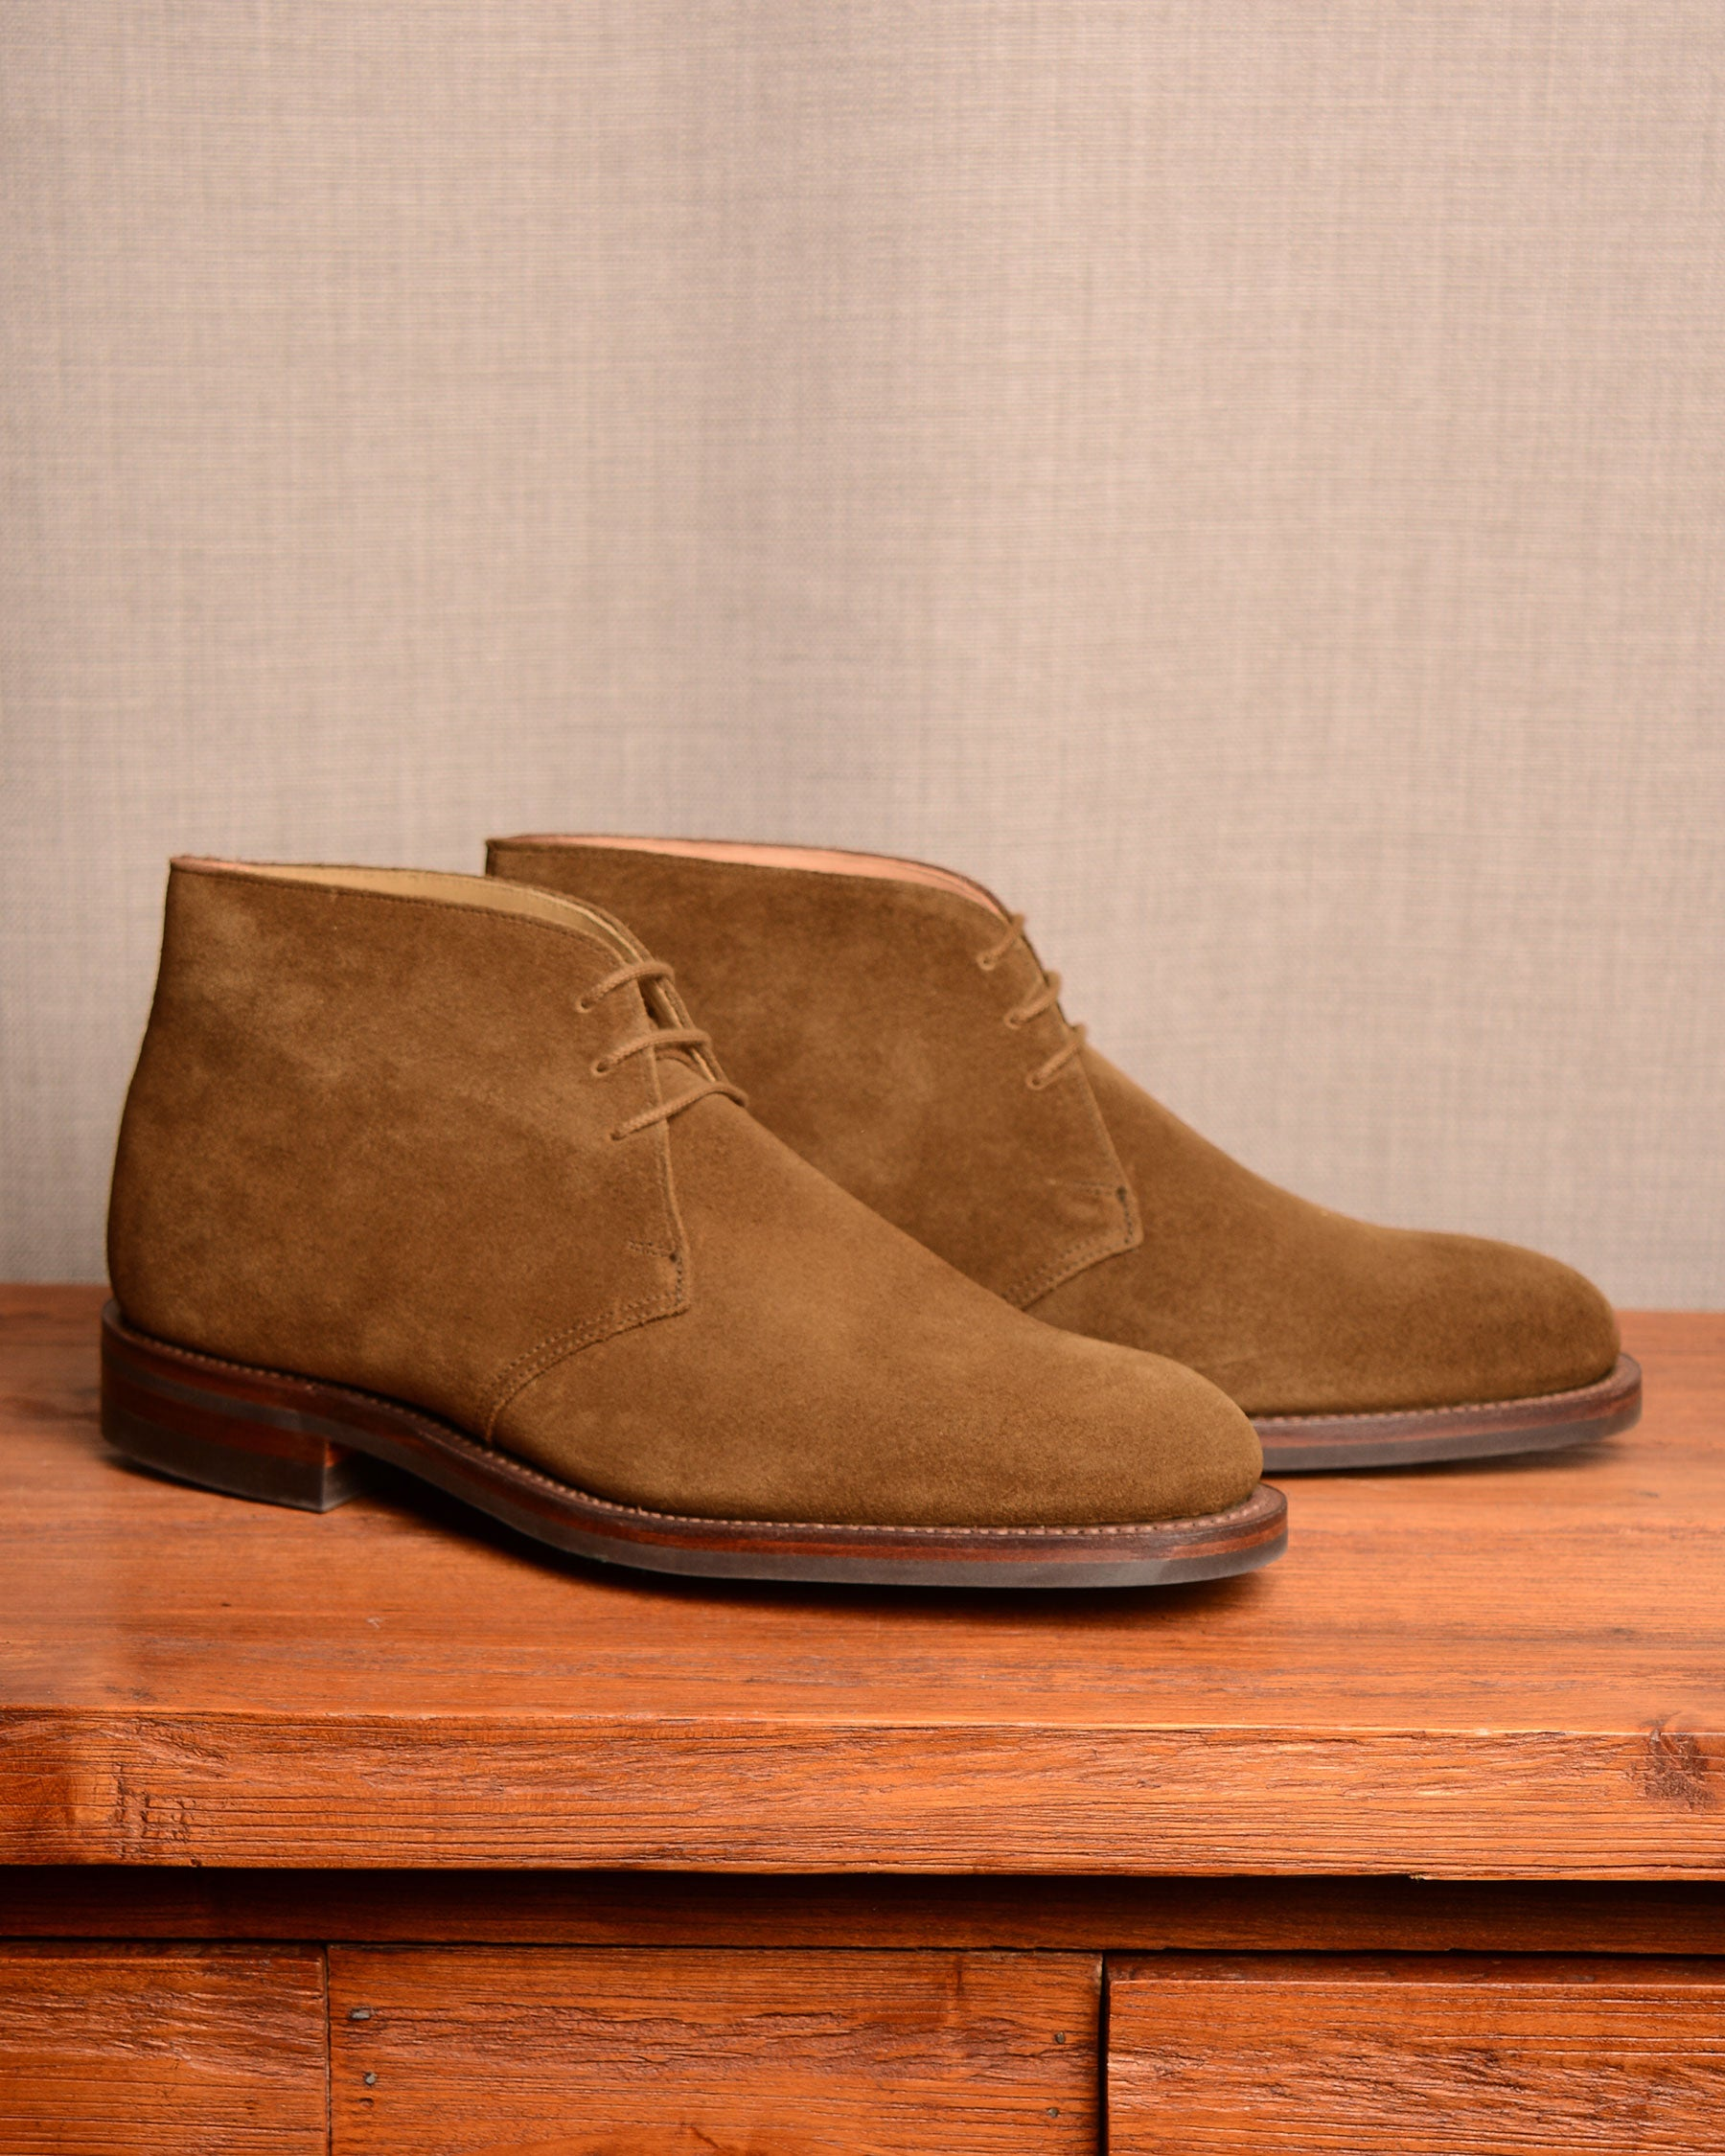 Crockett & Jones Chiltern - Snuff Suede